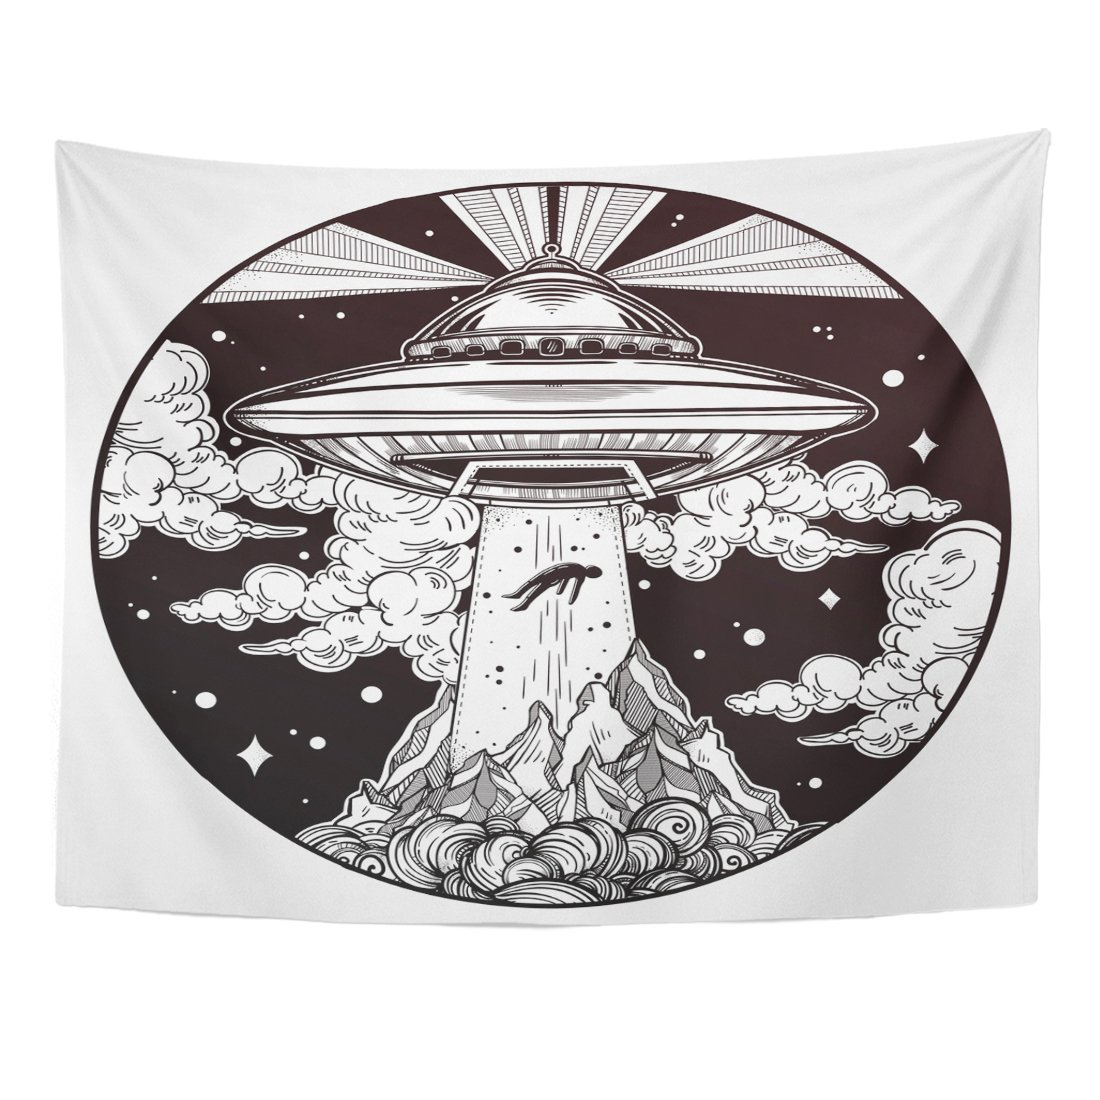 Emvency Tapestry Black Extraterrestrial Alien Spaceship UFO with Flying Saucer Abducting Human Conspiracy Theory Tattoo Home Decor Wall Hanging for Living Room Bedroom Dorm 60x80 inches